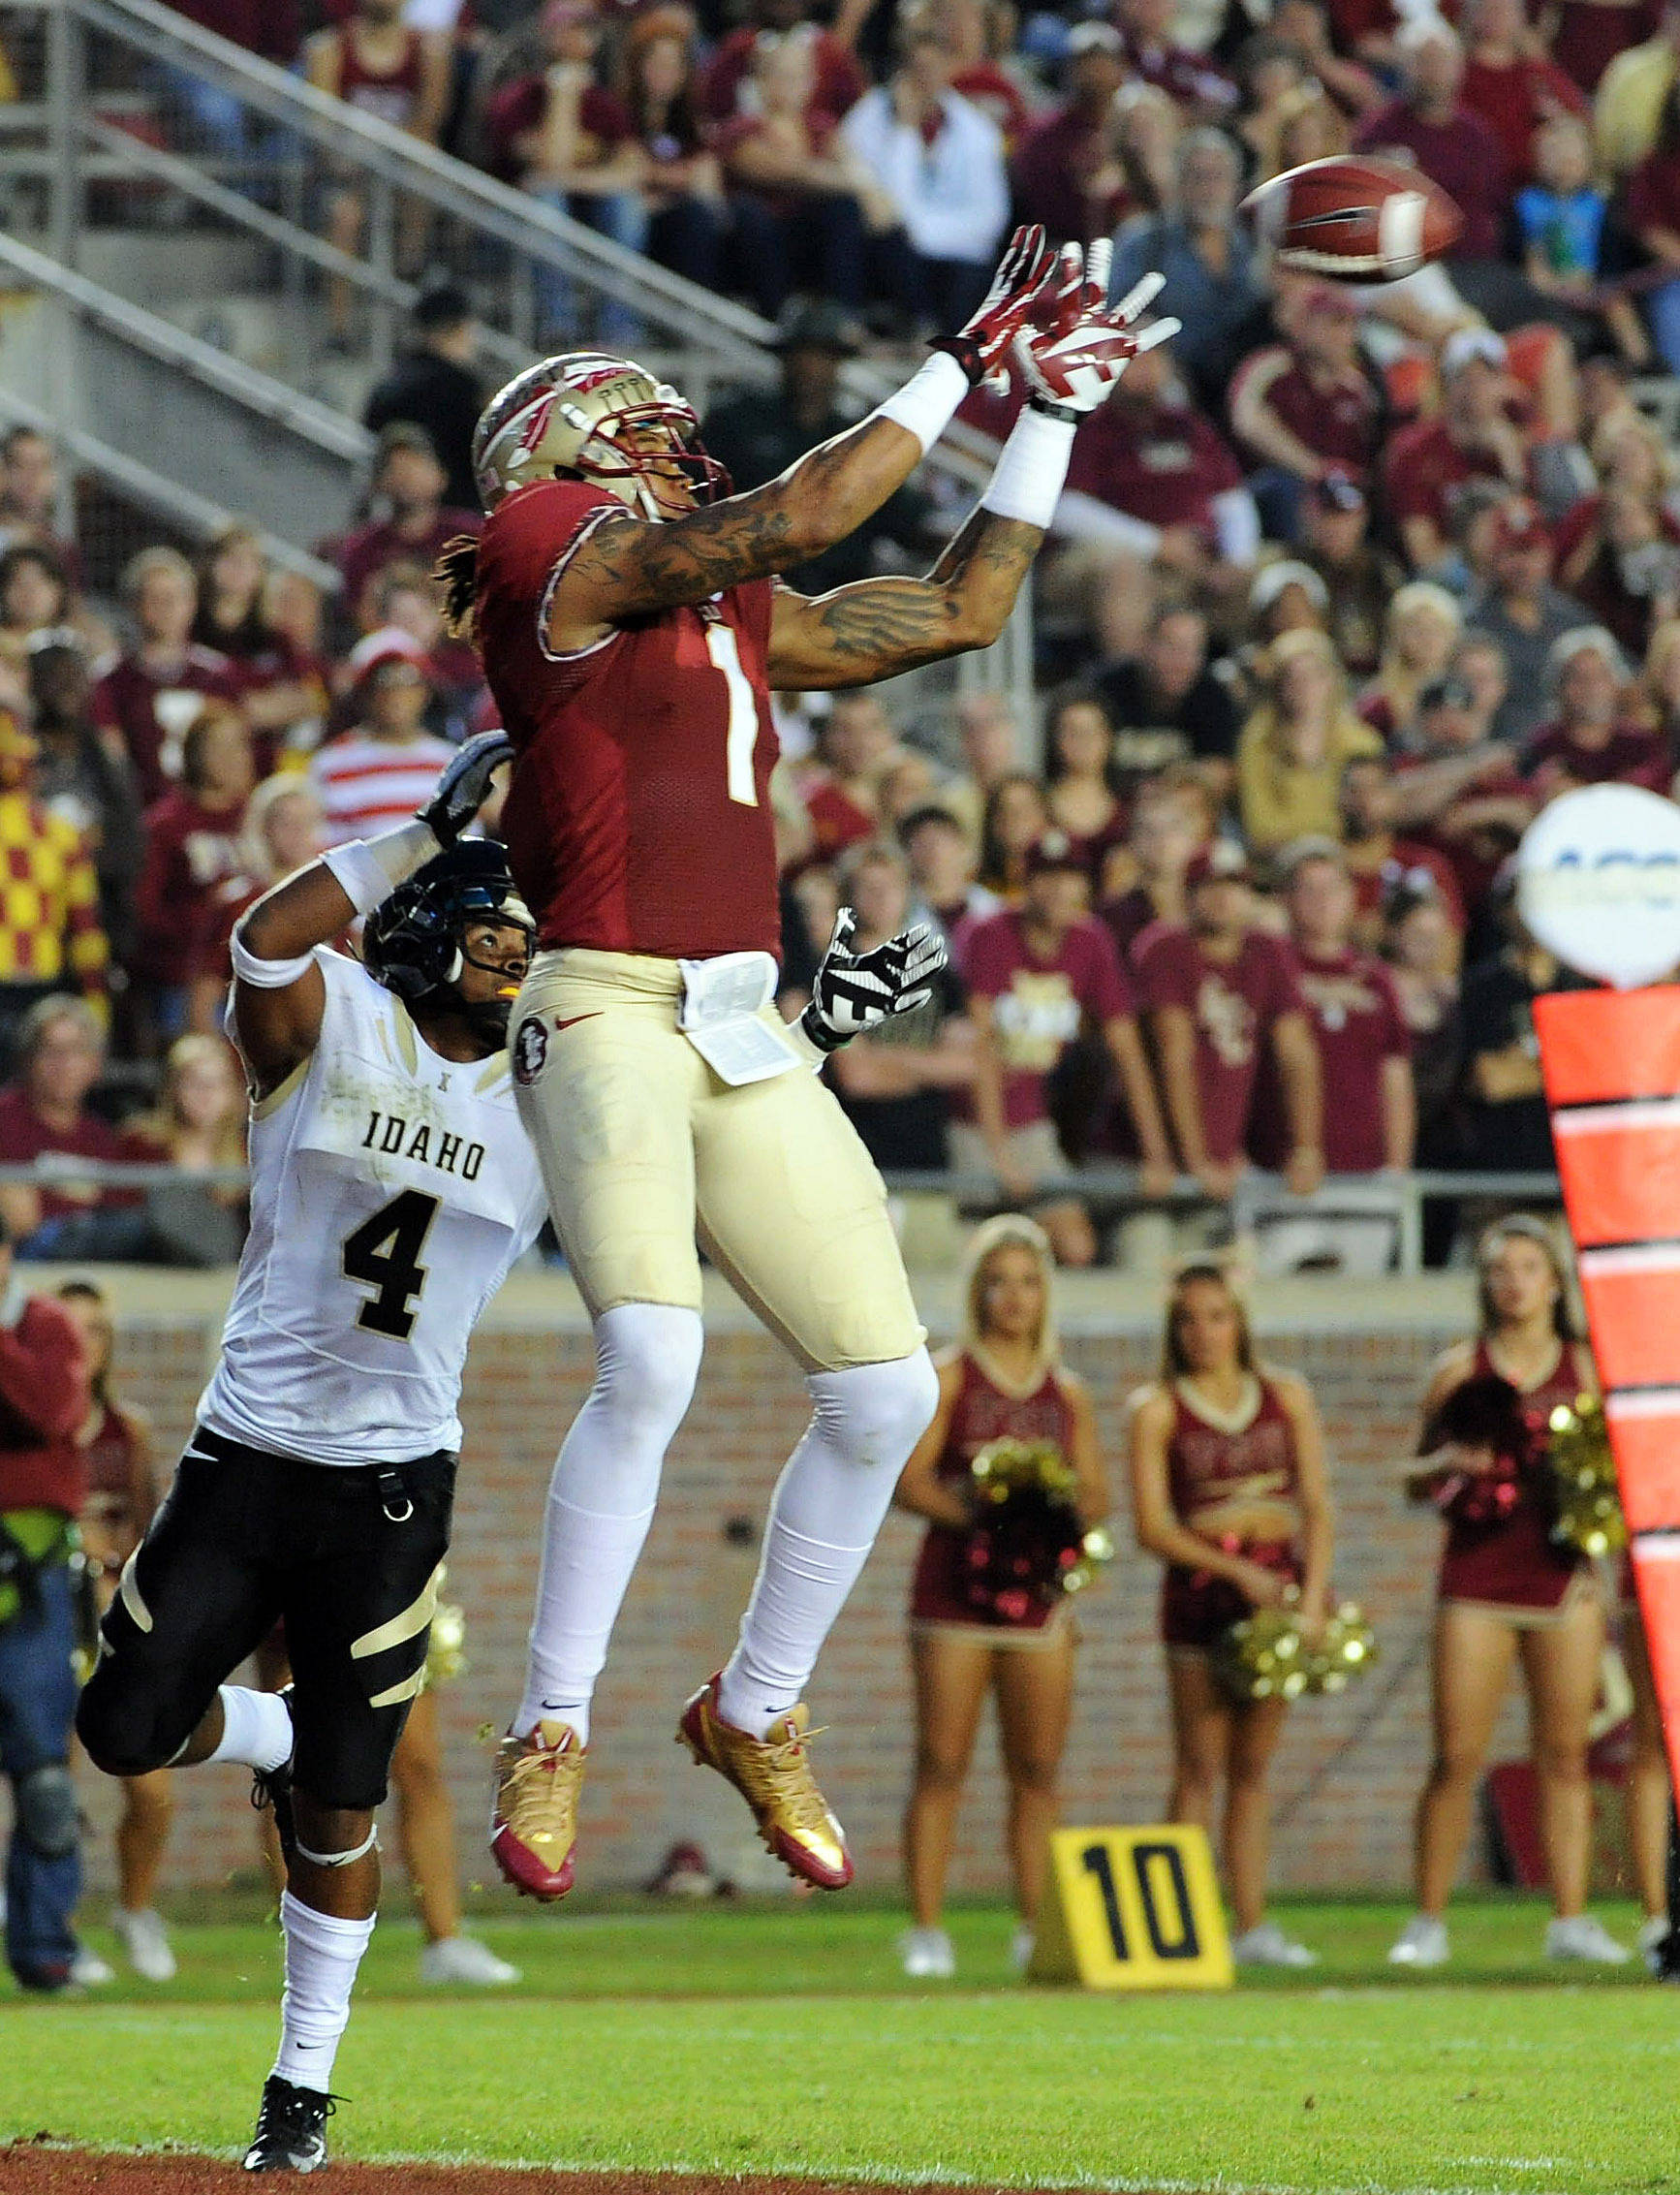 Kelvin Benjamin (1) catches a touchdown over Idaho Vandals cornerback Jayshawn Jordan (4). Mandatory Credit: Melina Vastola-USA TODAY Sports